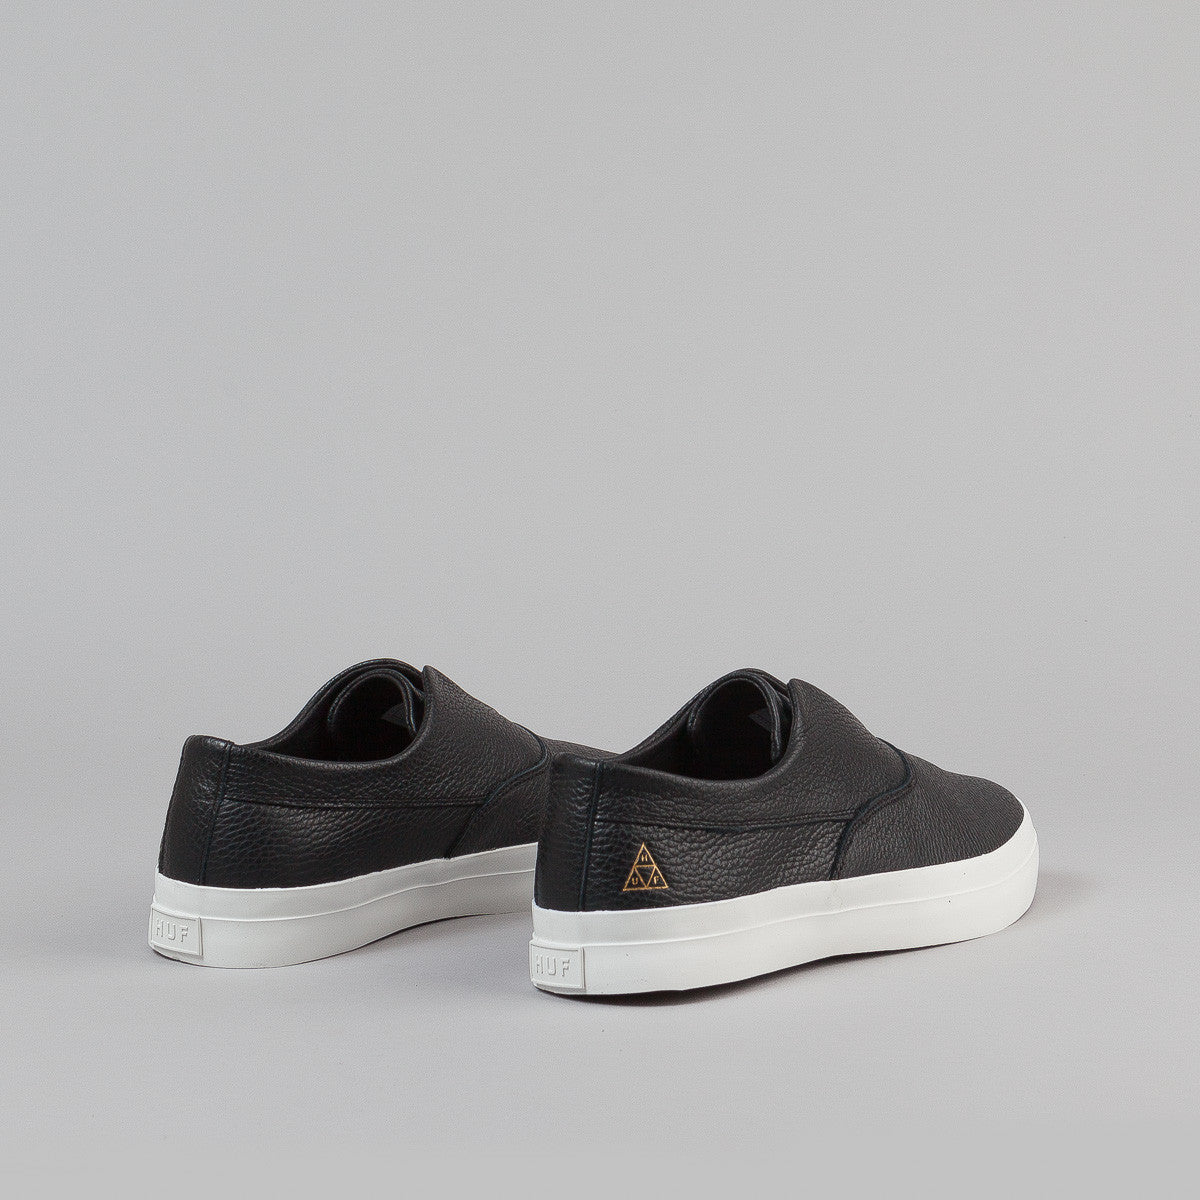 HUF Dylan Slip On Leather Shoes - Black / White